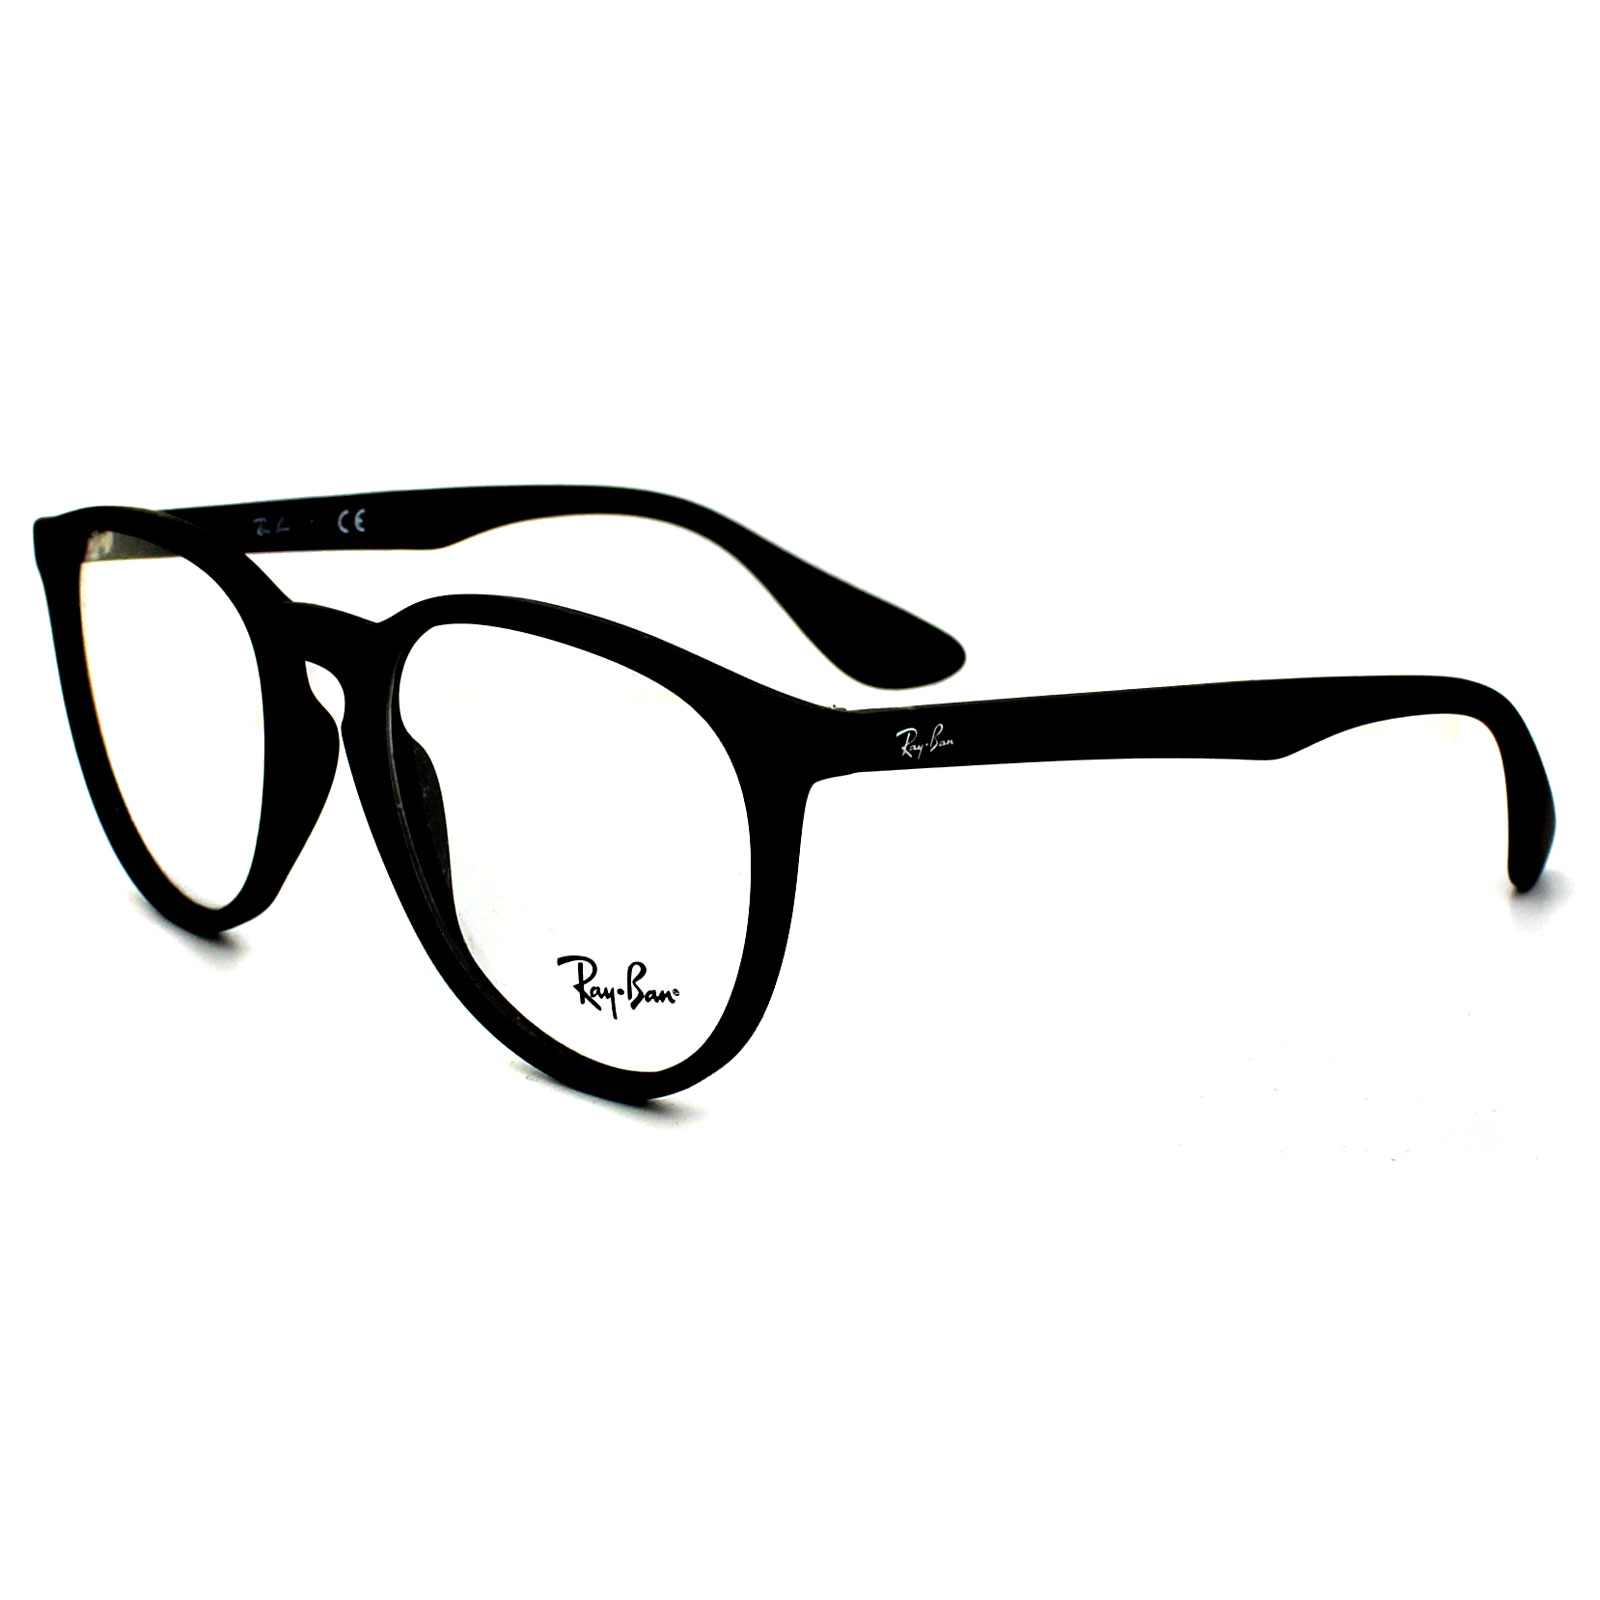 Ray-Ban Glasses Frames 7046 5364 Rubberised Black Clear ...